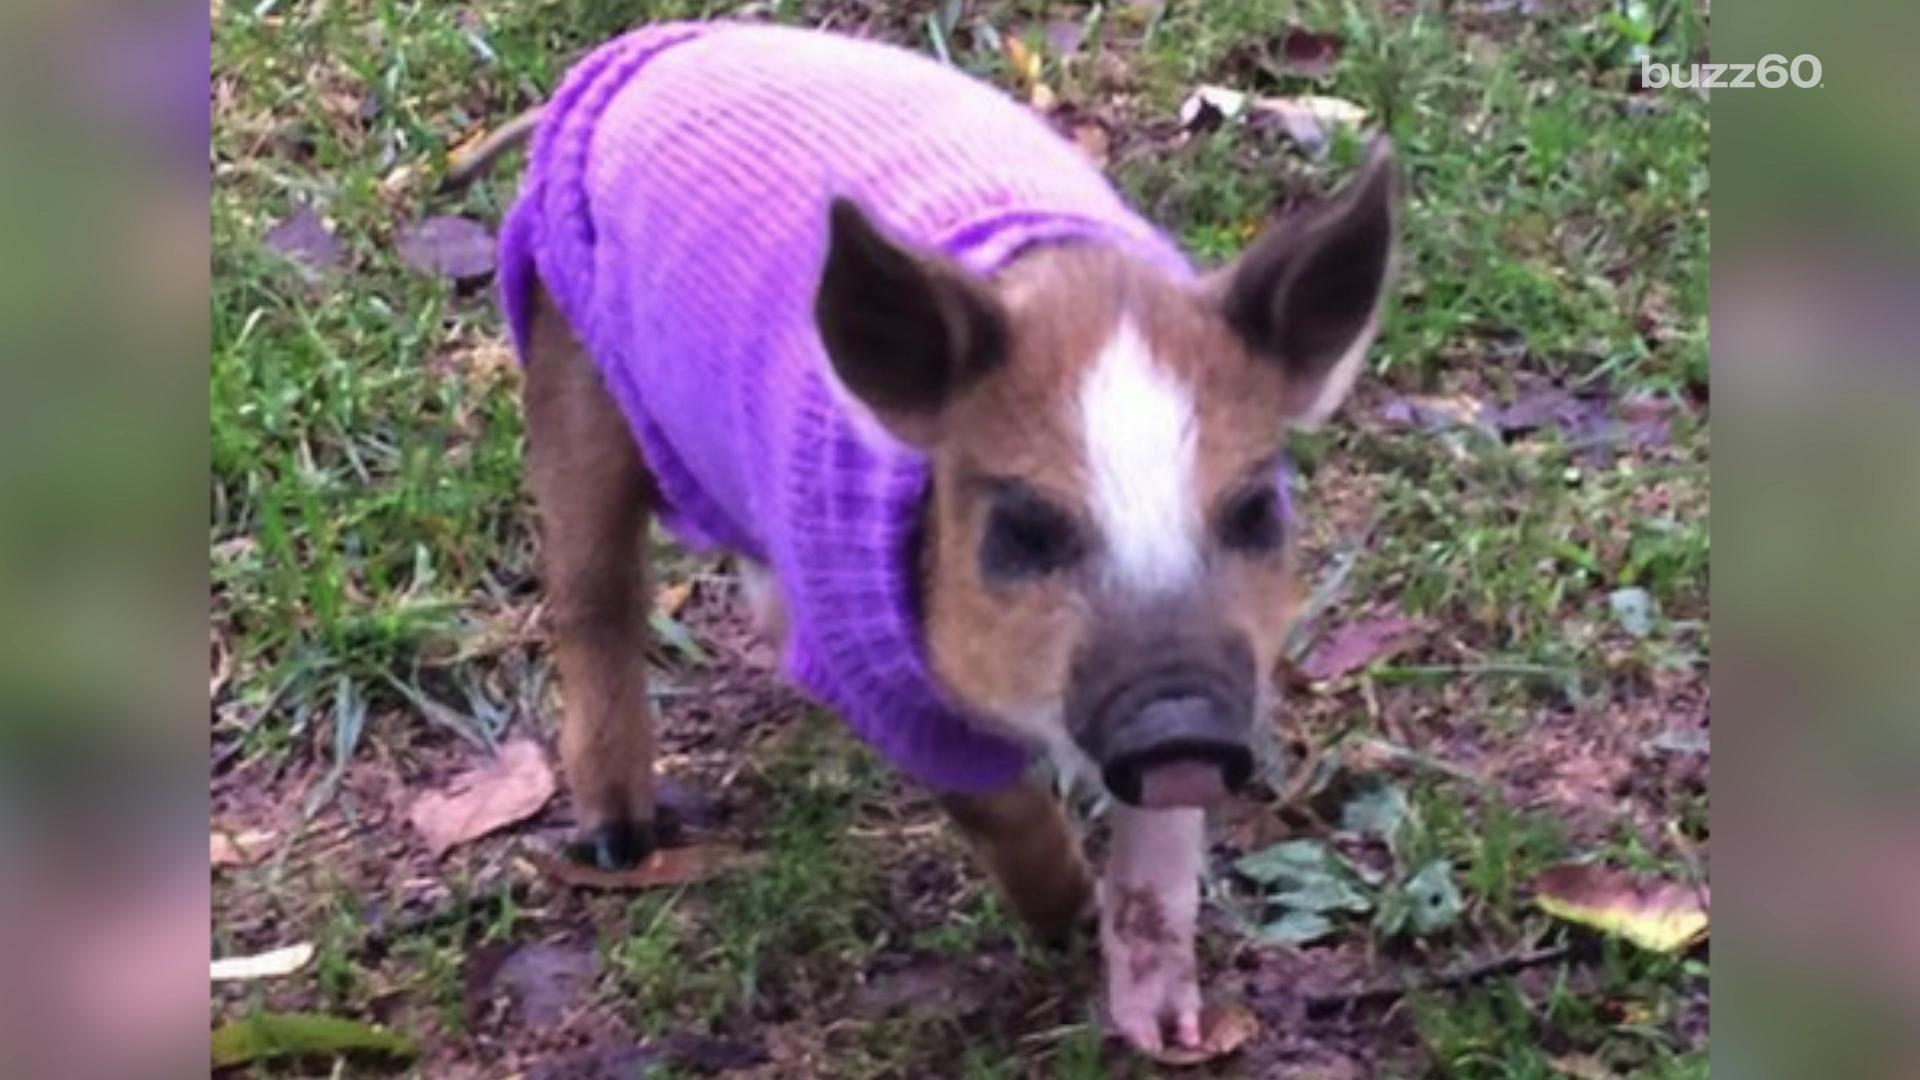 rescued baby pig trots around in handsome purple sweater